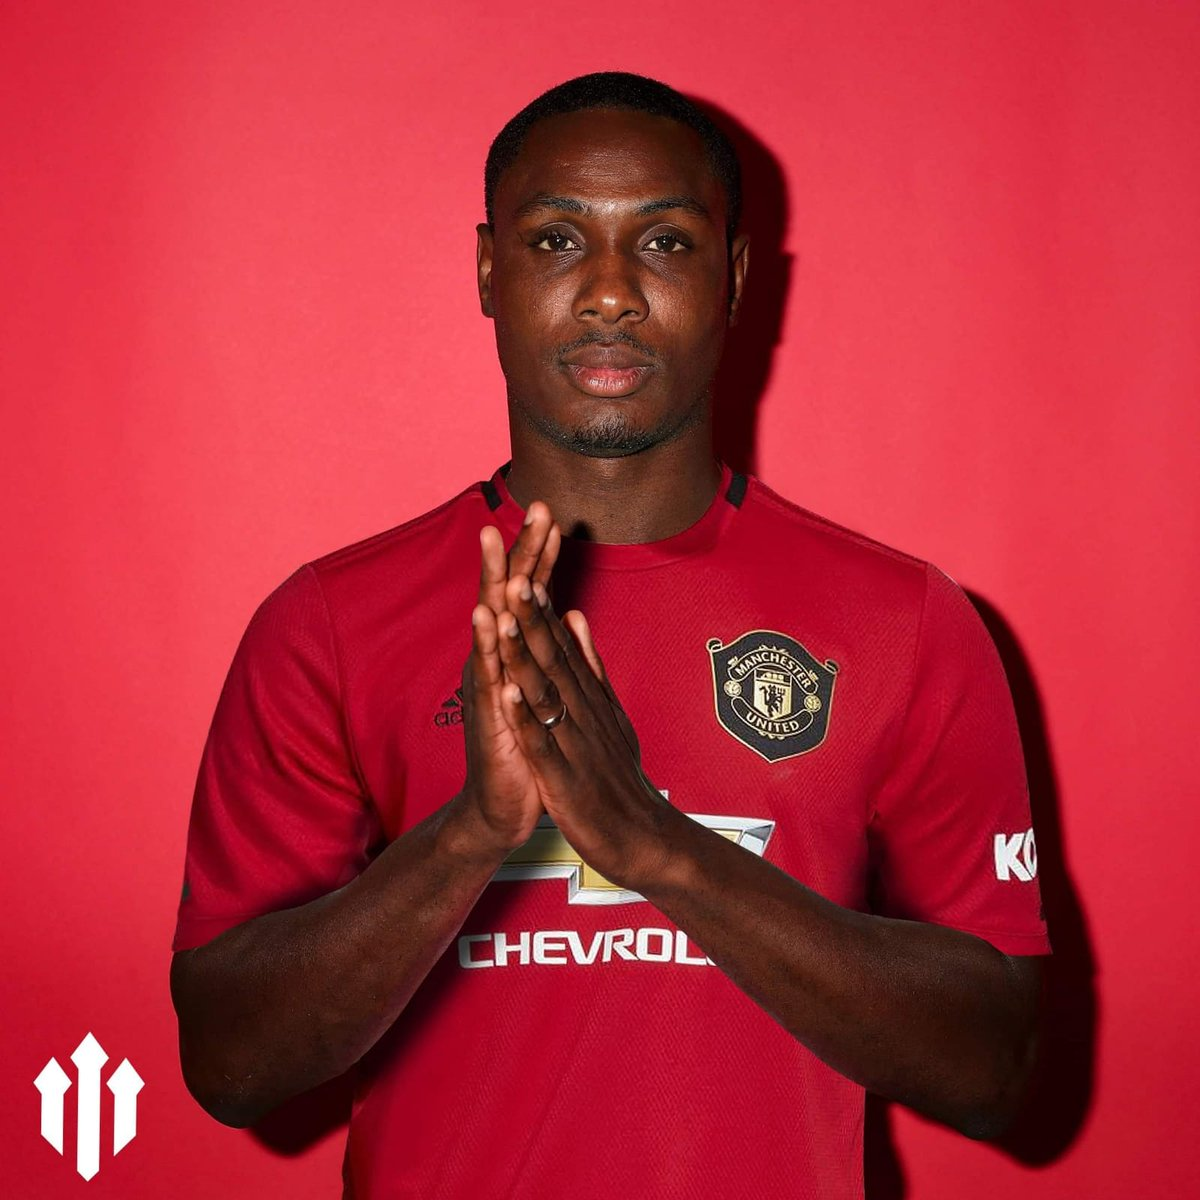 Manchester United Completes A 6 Months Loan Move for Odion Ighalo